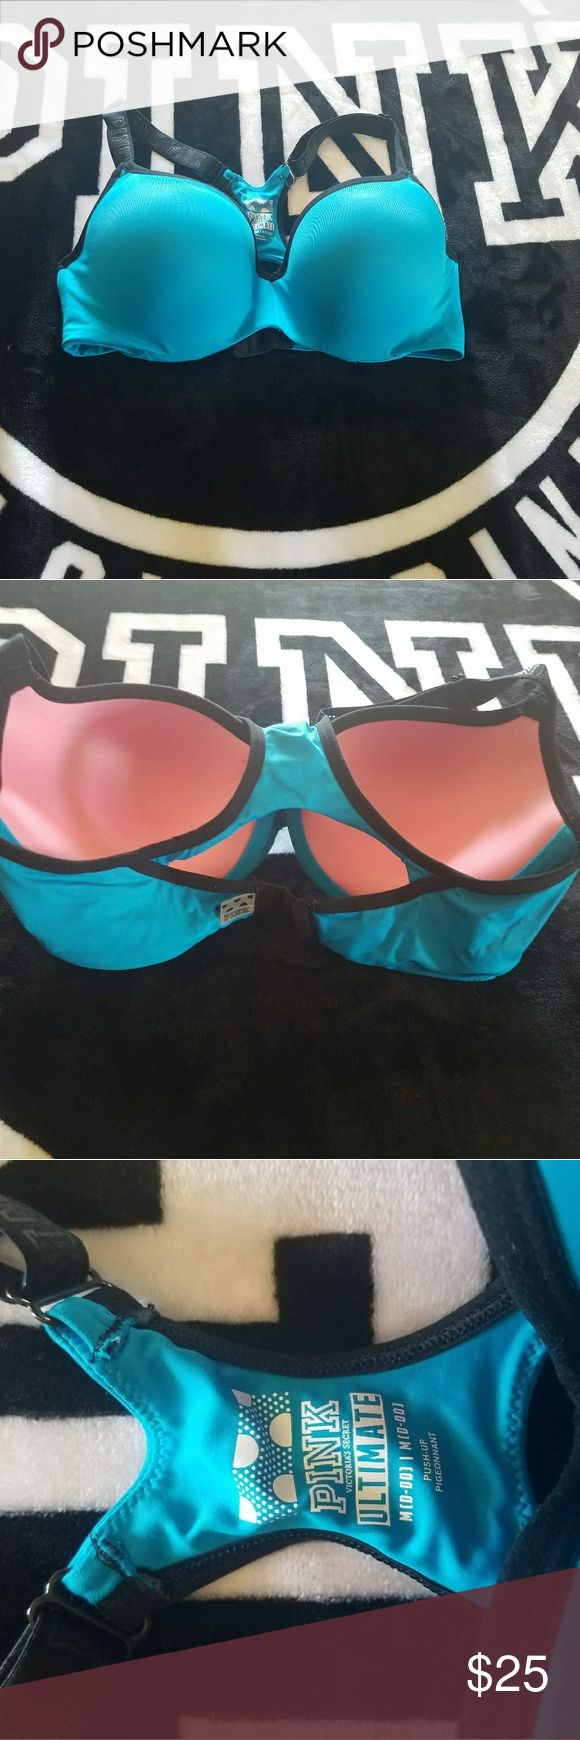 PINK ULTIMATE racerback push up sports bra D-DD Size medium D-DD ULTIMATE racerback push up sports bra . Never worn but was washed once. Has a tiny snag on one cup. Be sure to check out my closet as I have lots of other pink items for sale. PINK Victoria's Secret Intimates & Sleepwear Bras